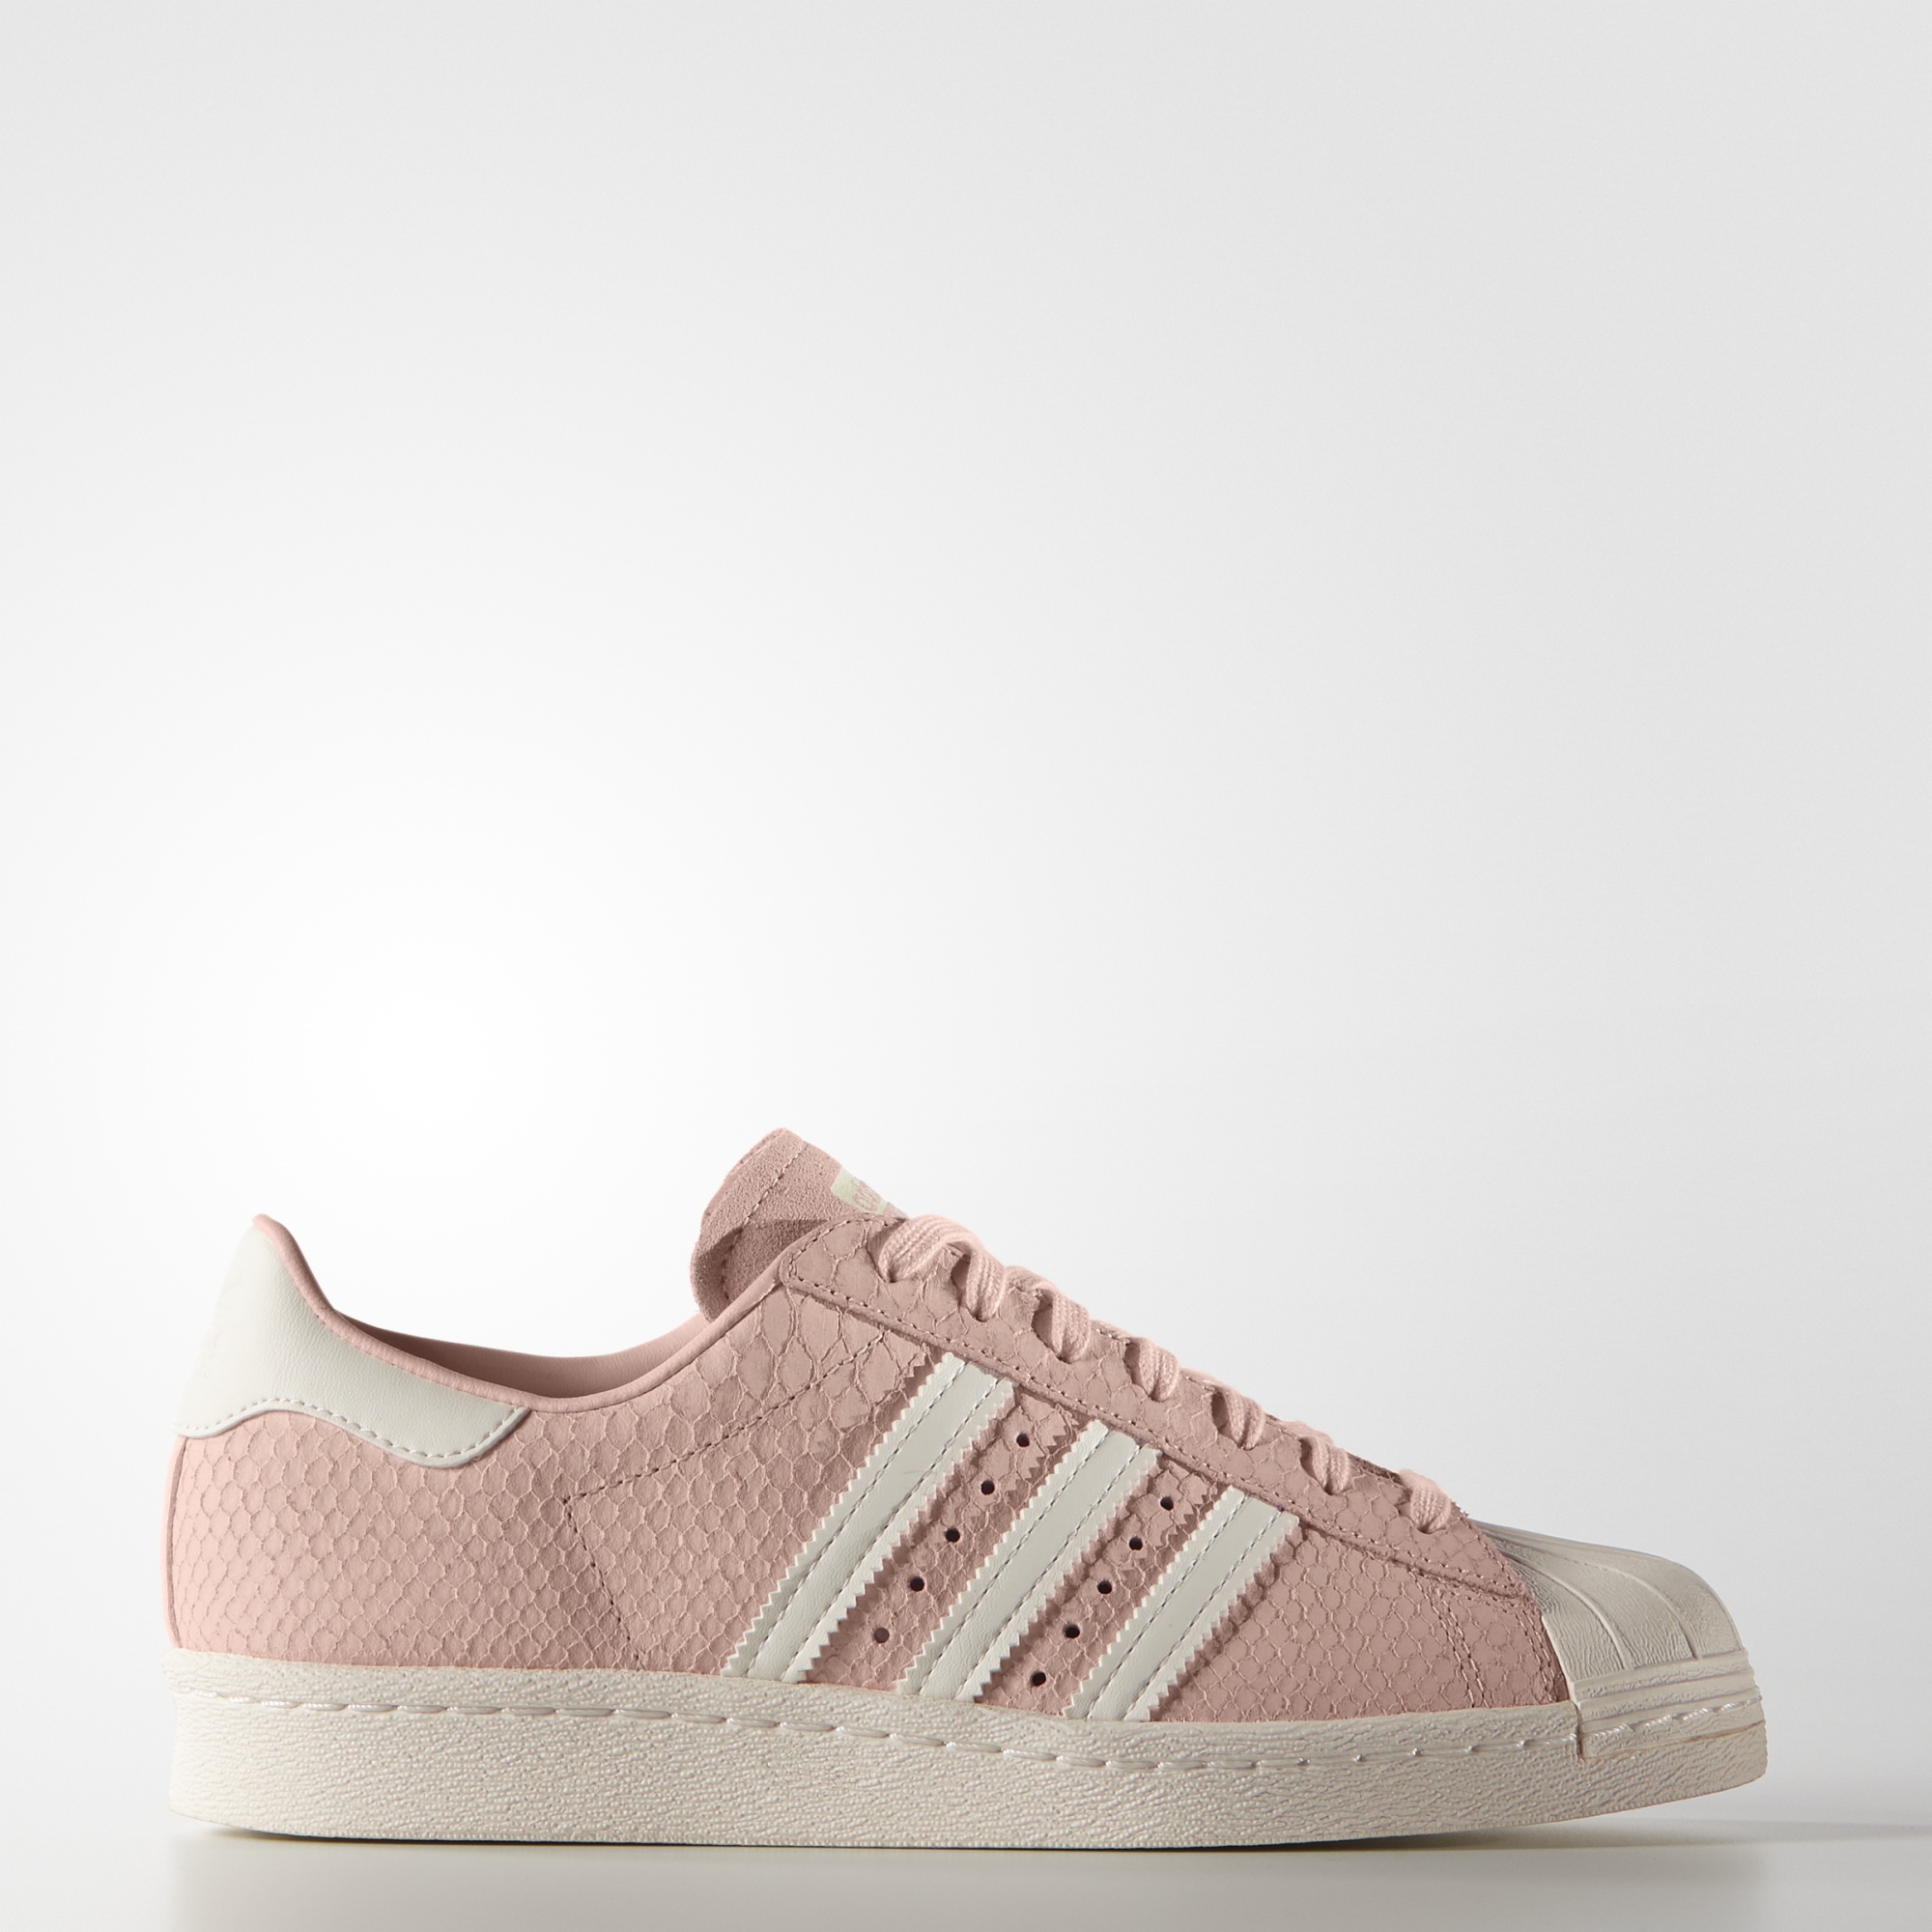 adidas Superstar 80s W shoes pink